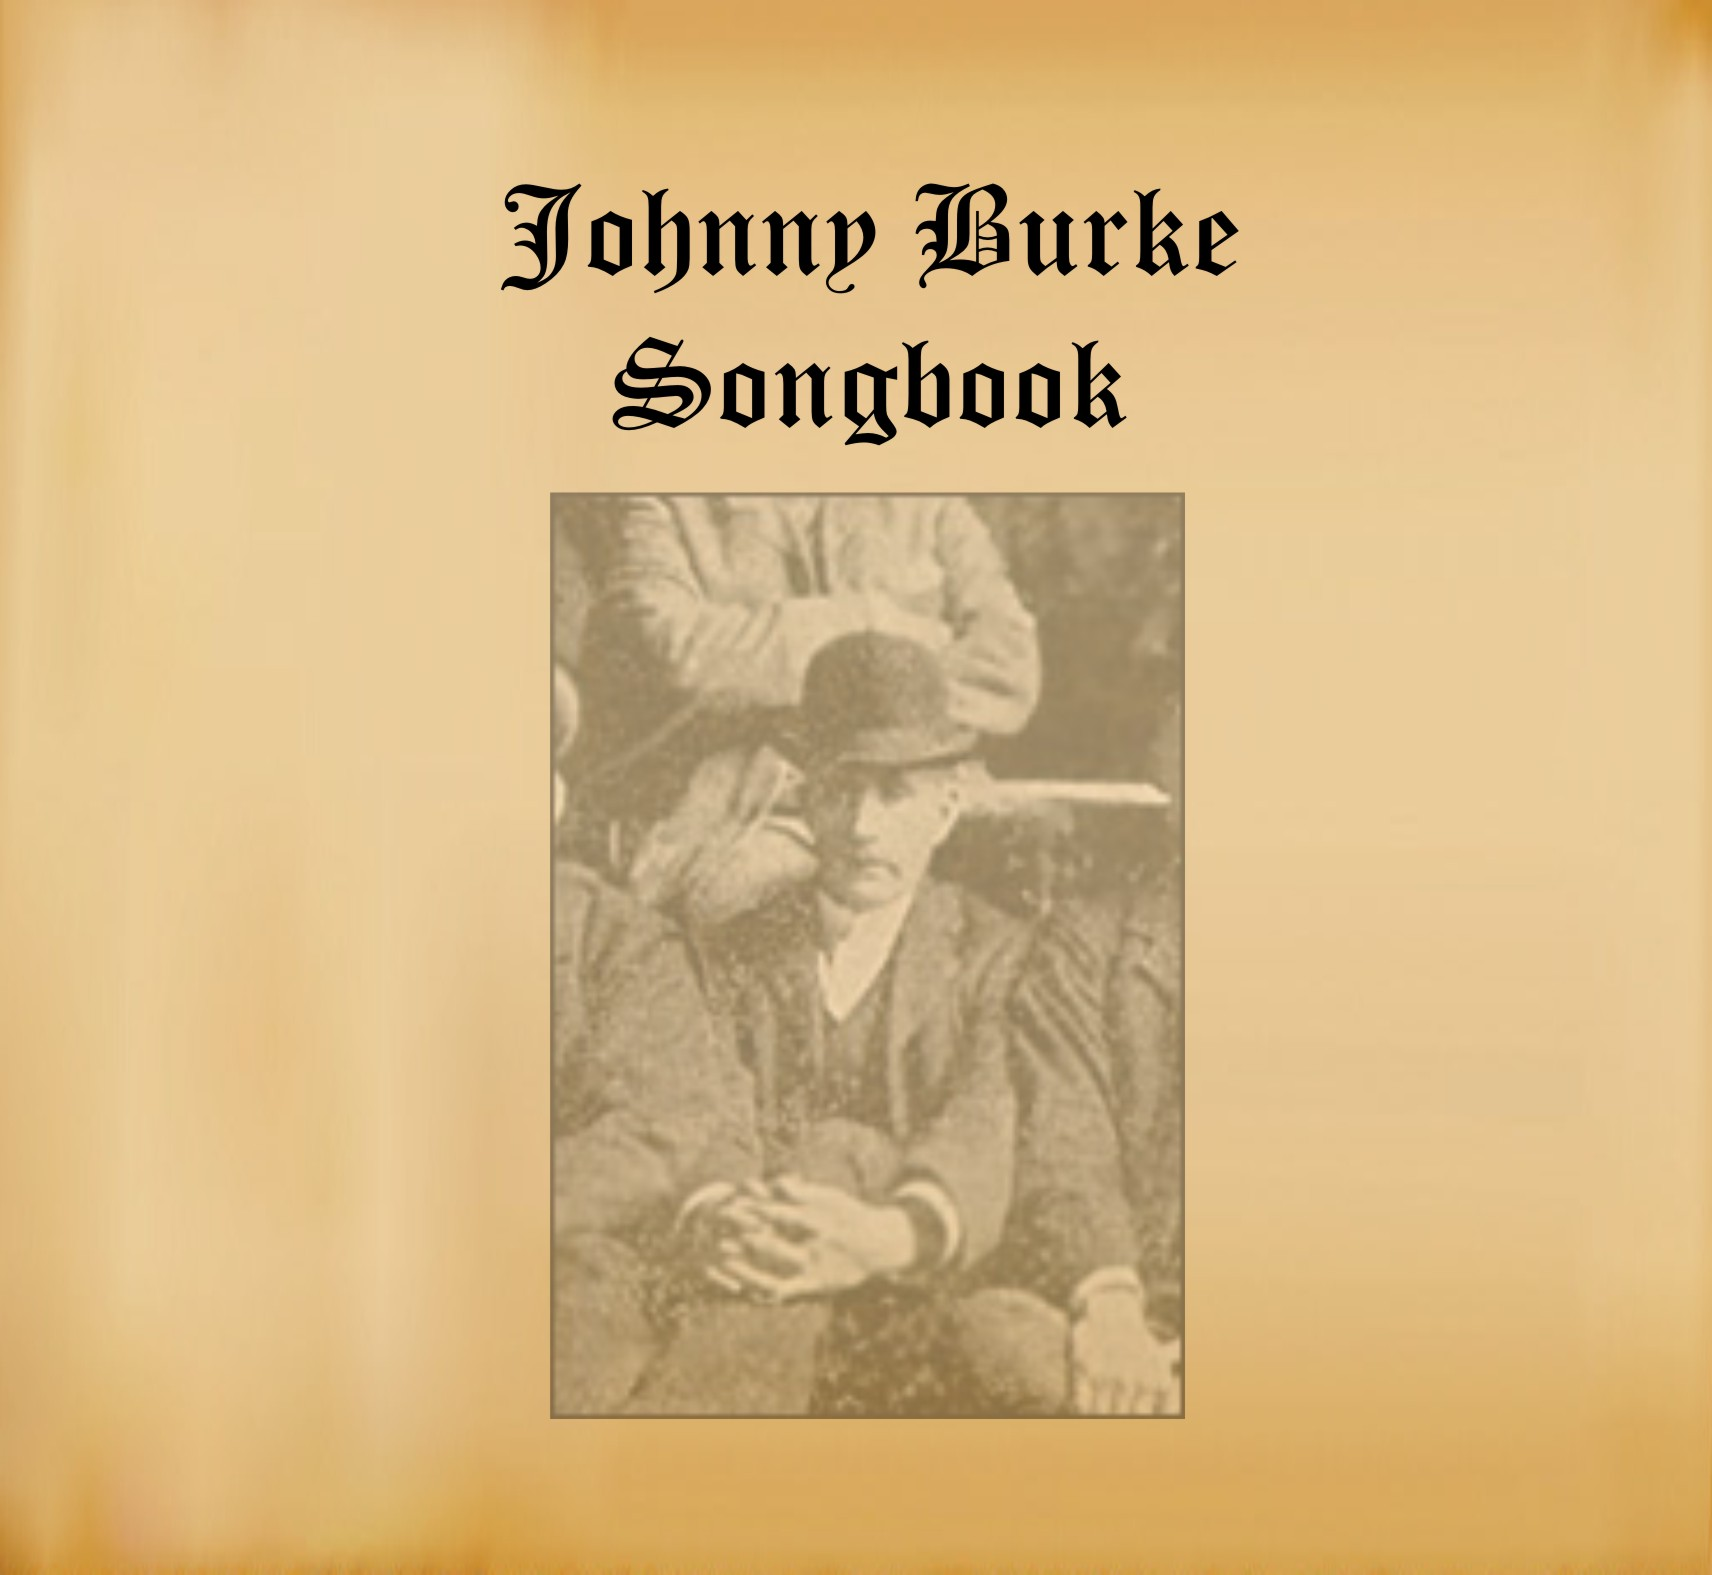 Johnny Burke Songbook